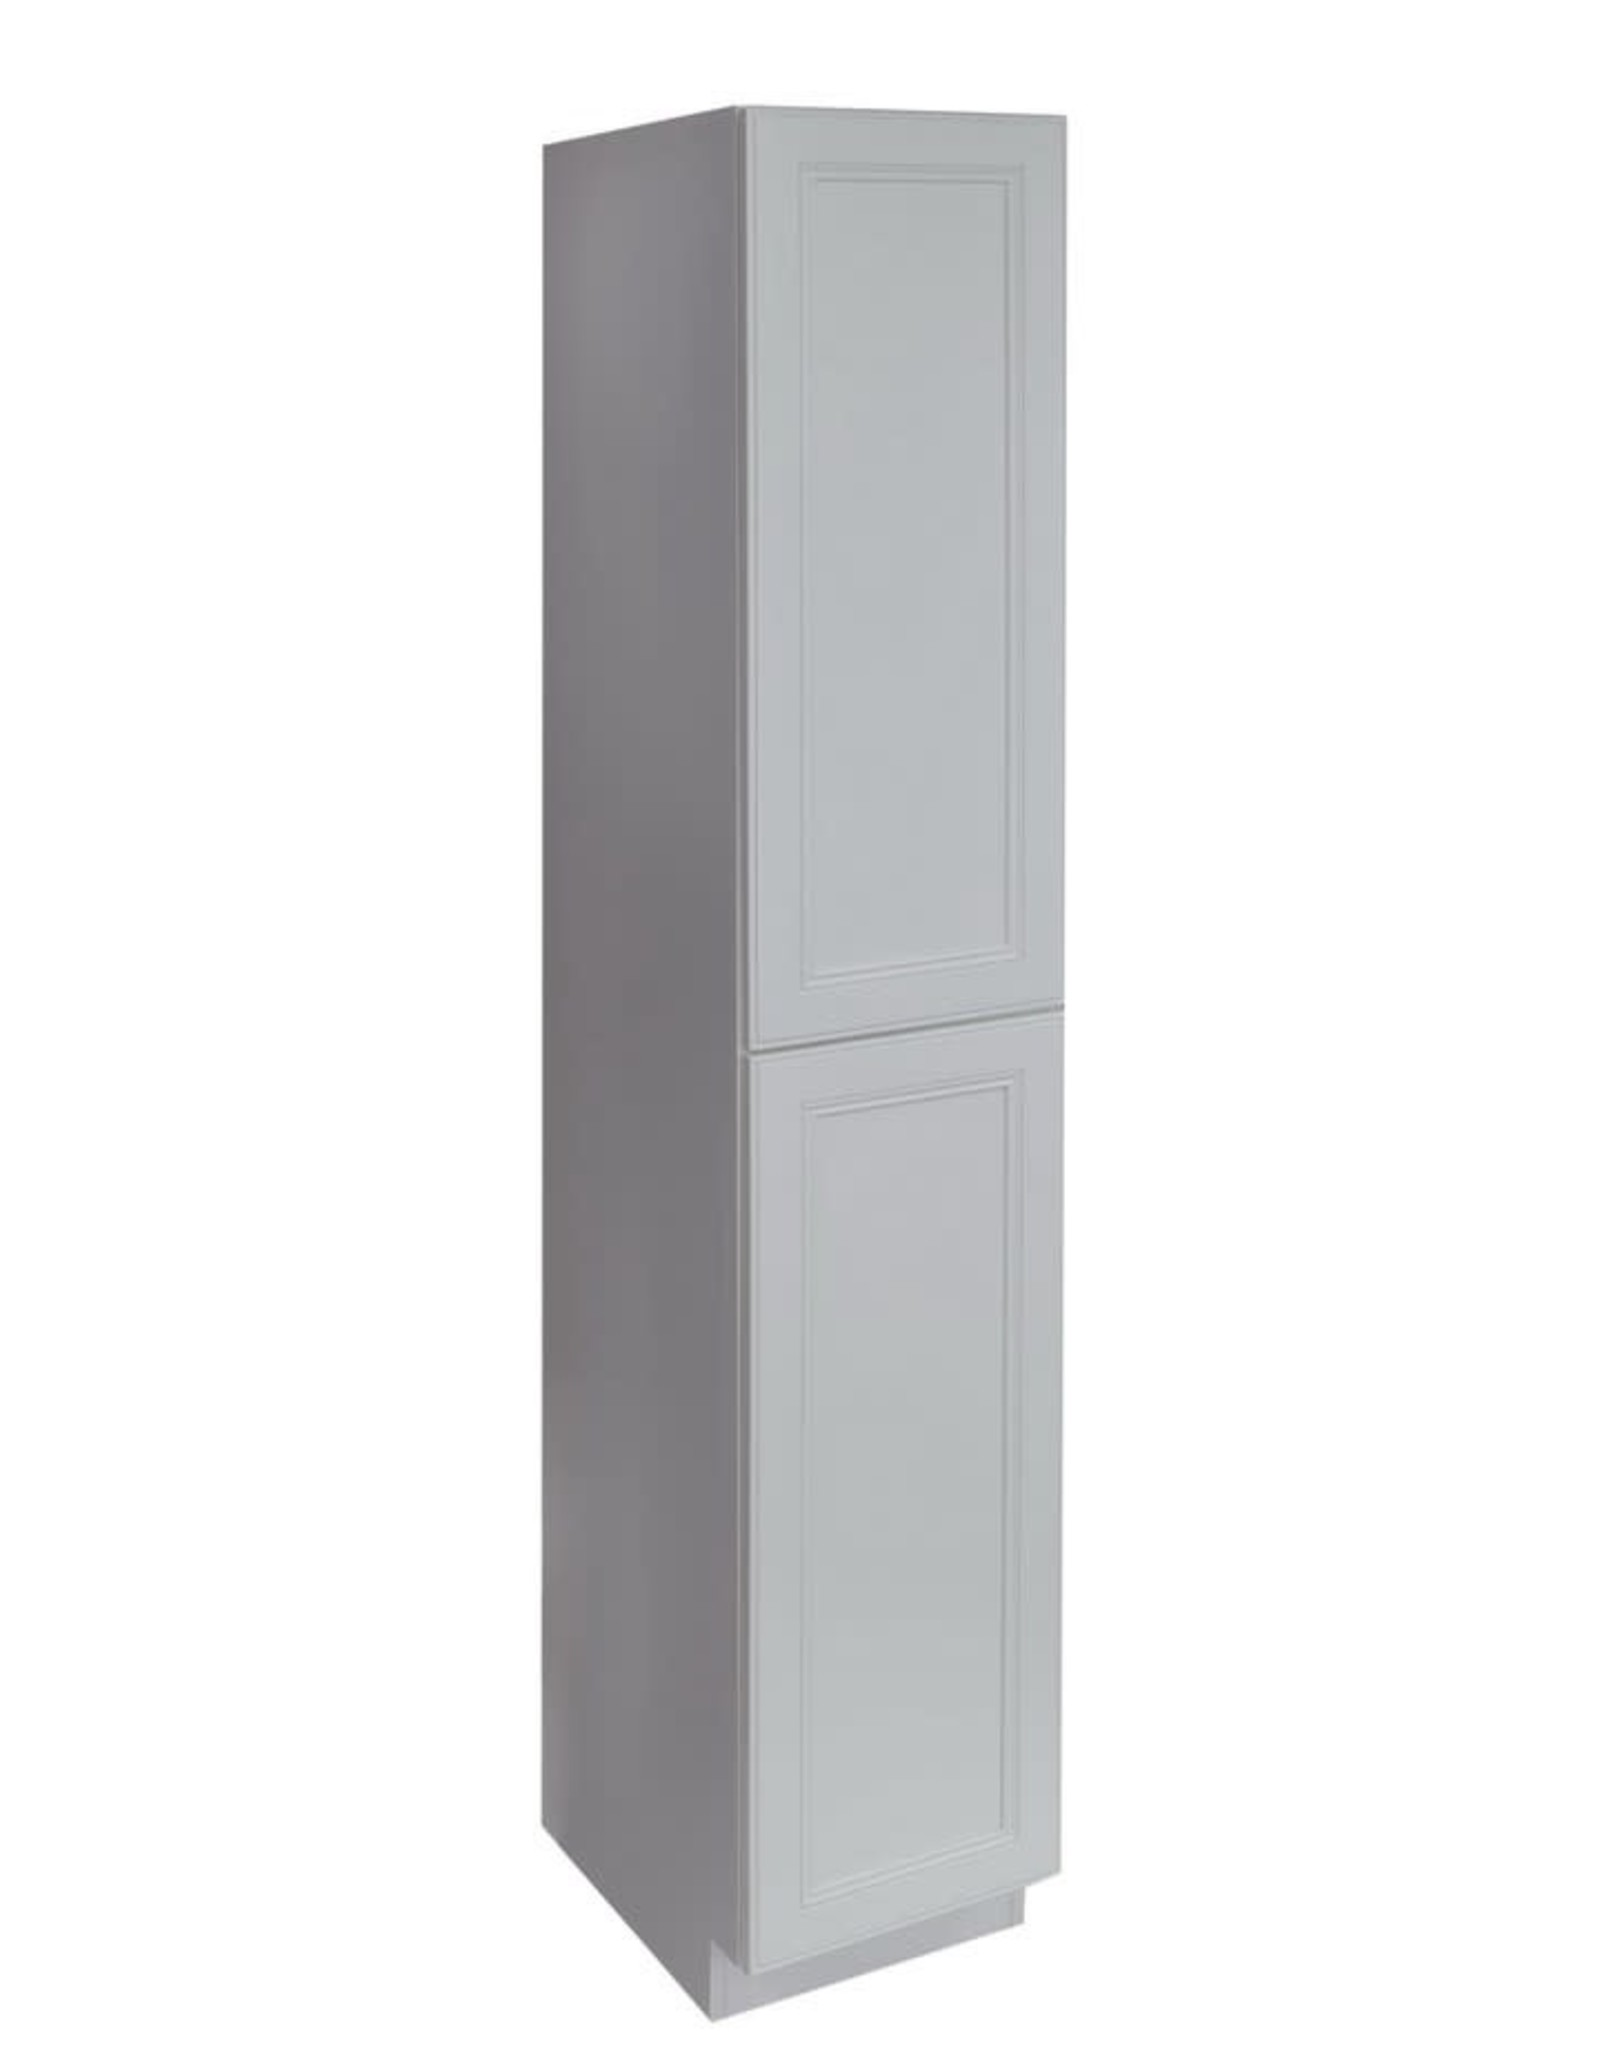 Classic Brand Cabinetry Linen Tower- Right Hinge